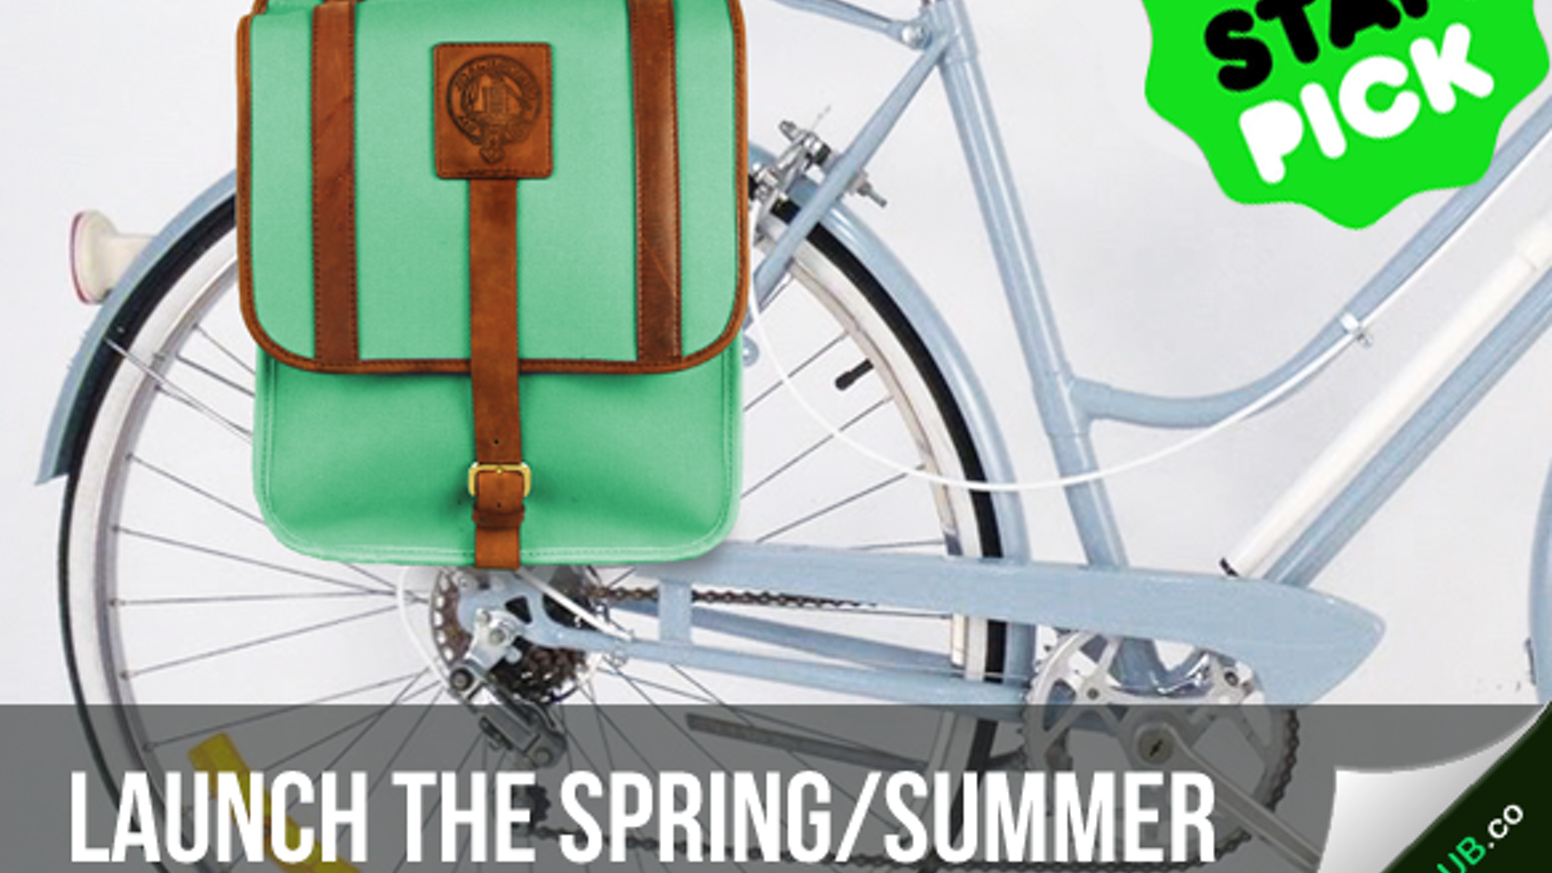 Launch the Spring collection of our canvas & leather bike panniers in awesome, vivid colors. Add visibility and color to your commute!